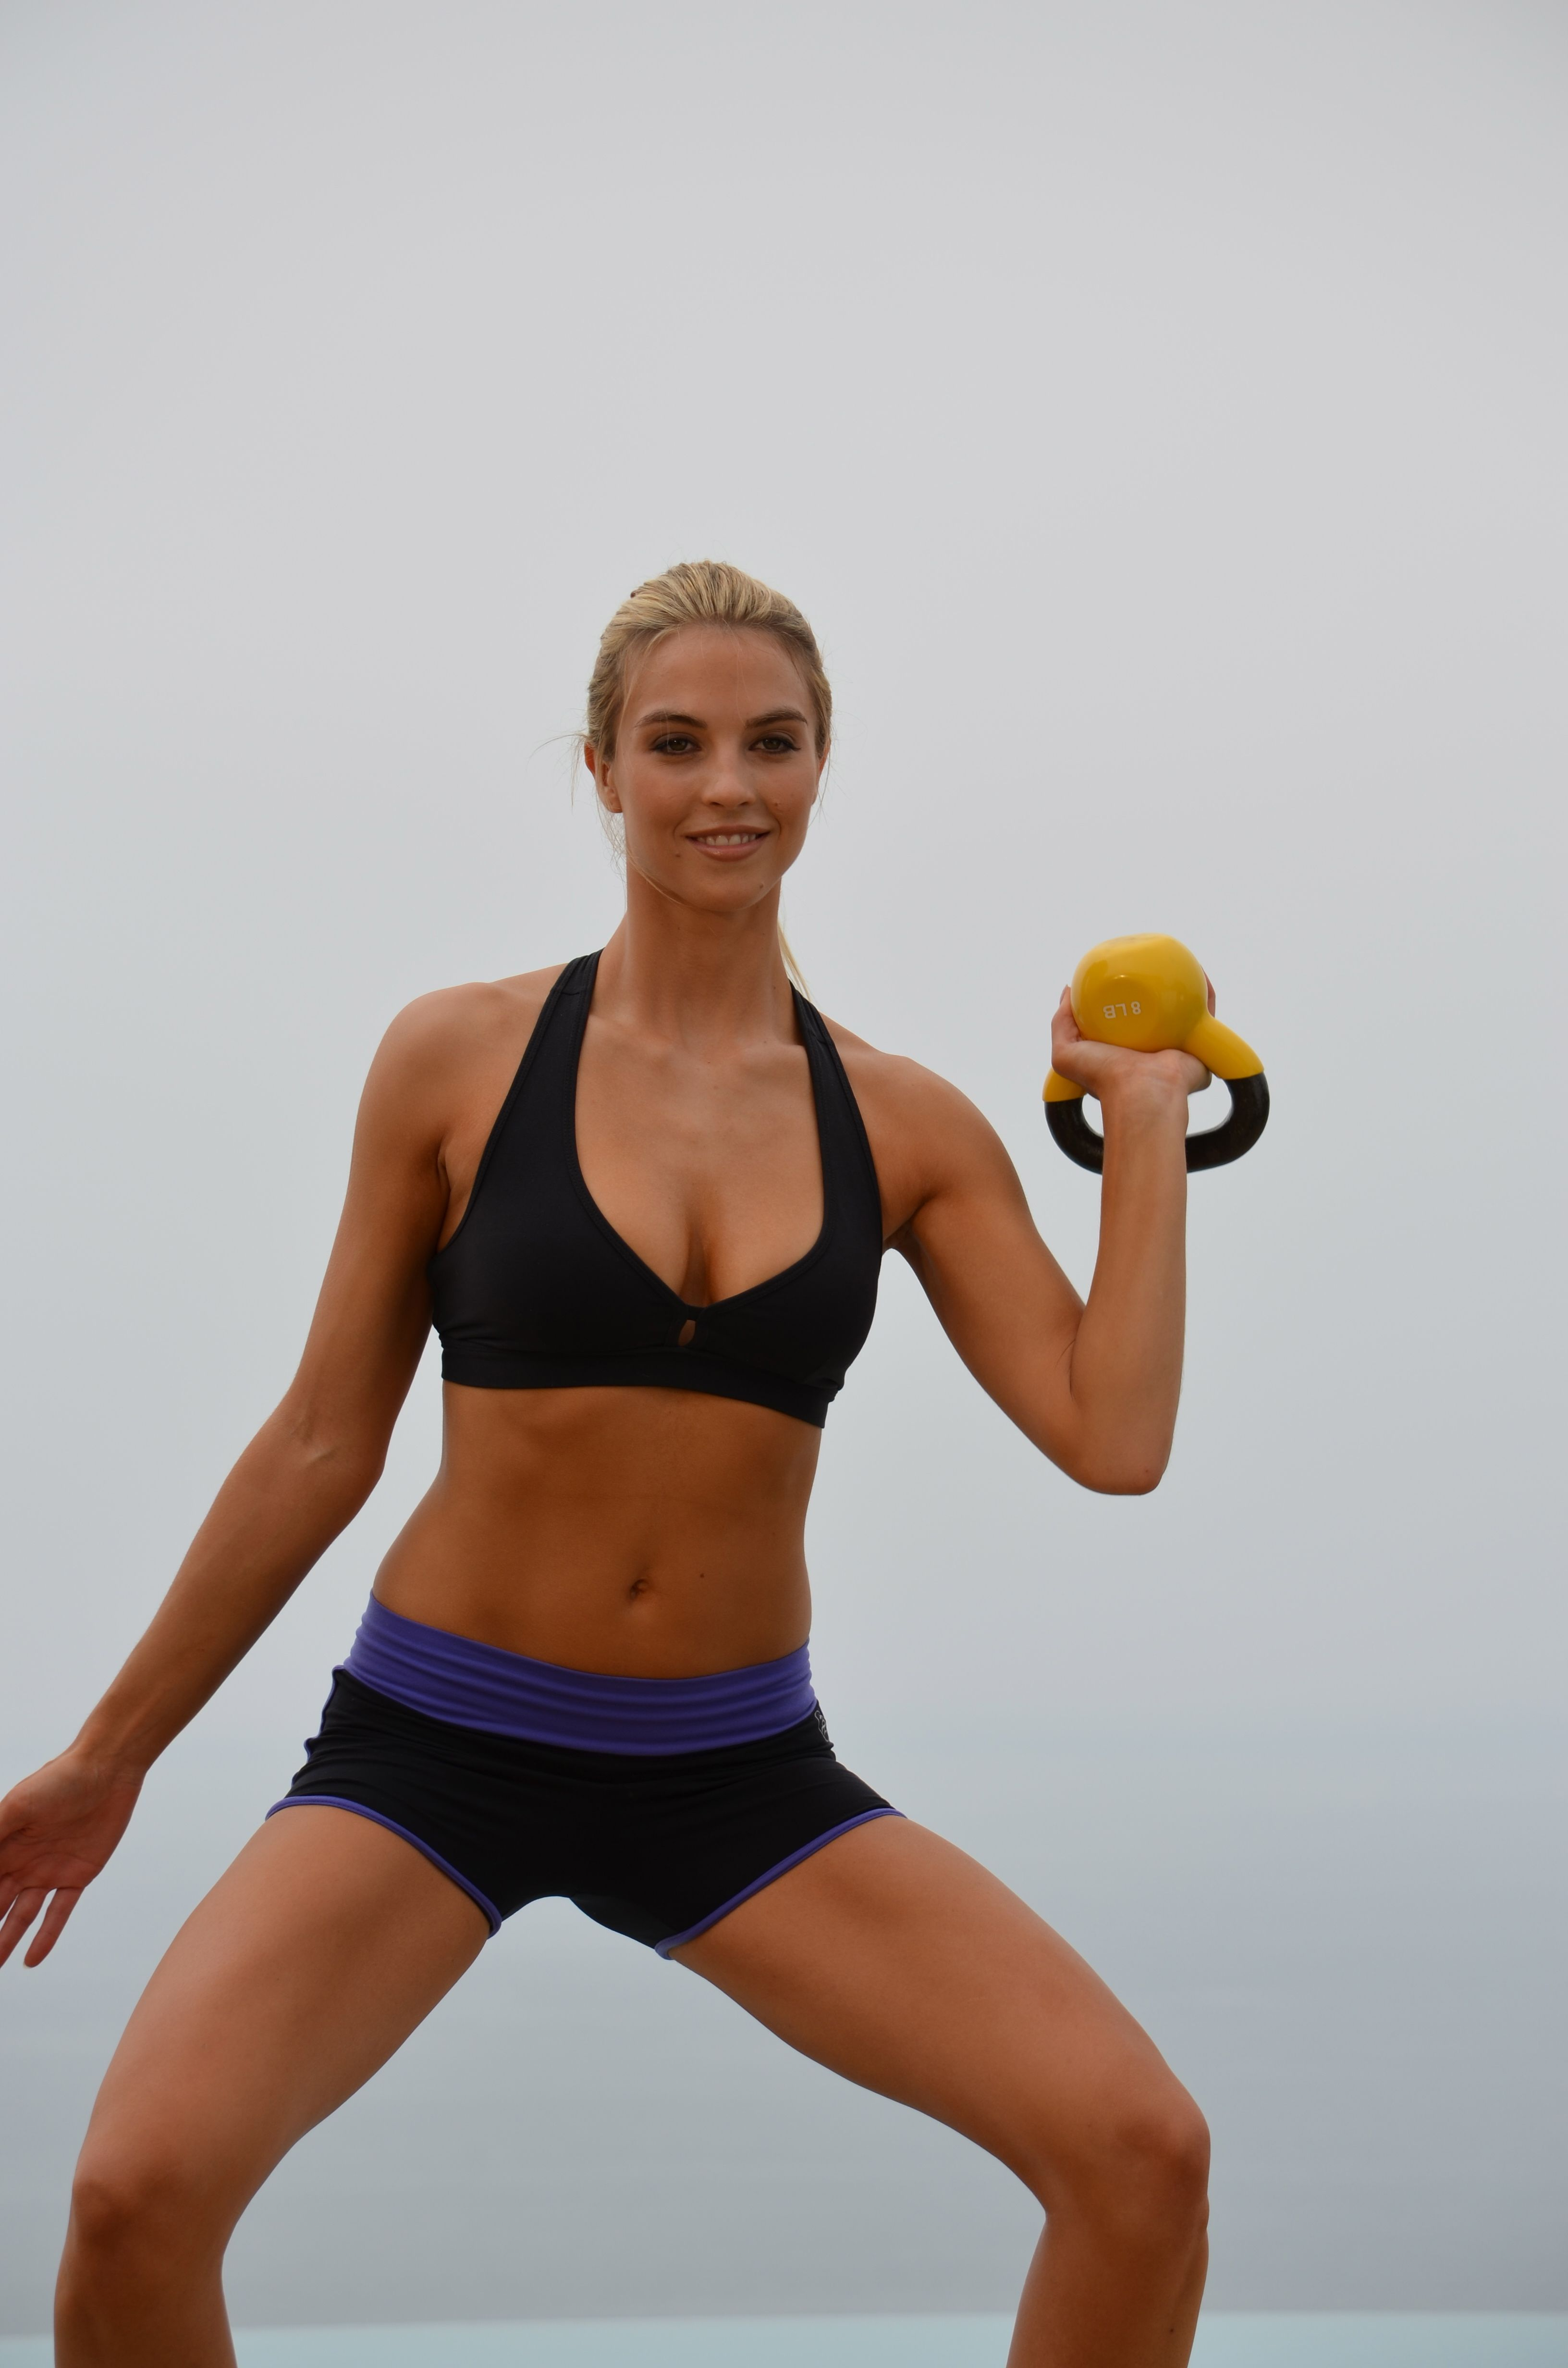 Torch 200 Calories In 10 Minutes! Burn More Calories, Rest